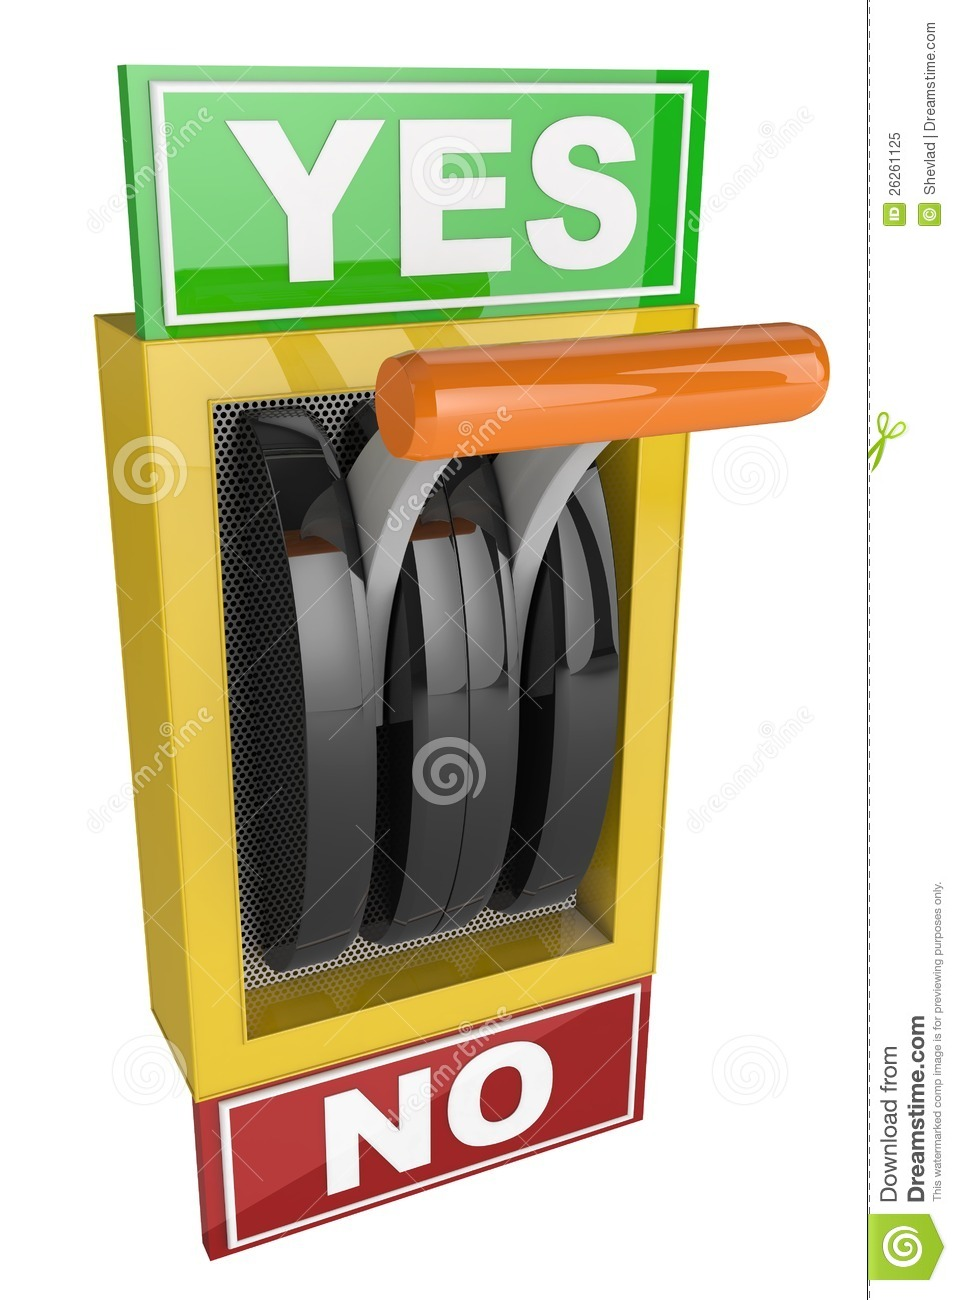 Switch Lever Yes And No Royalty Free Stock Photo